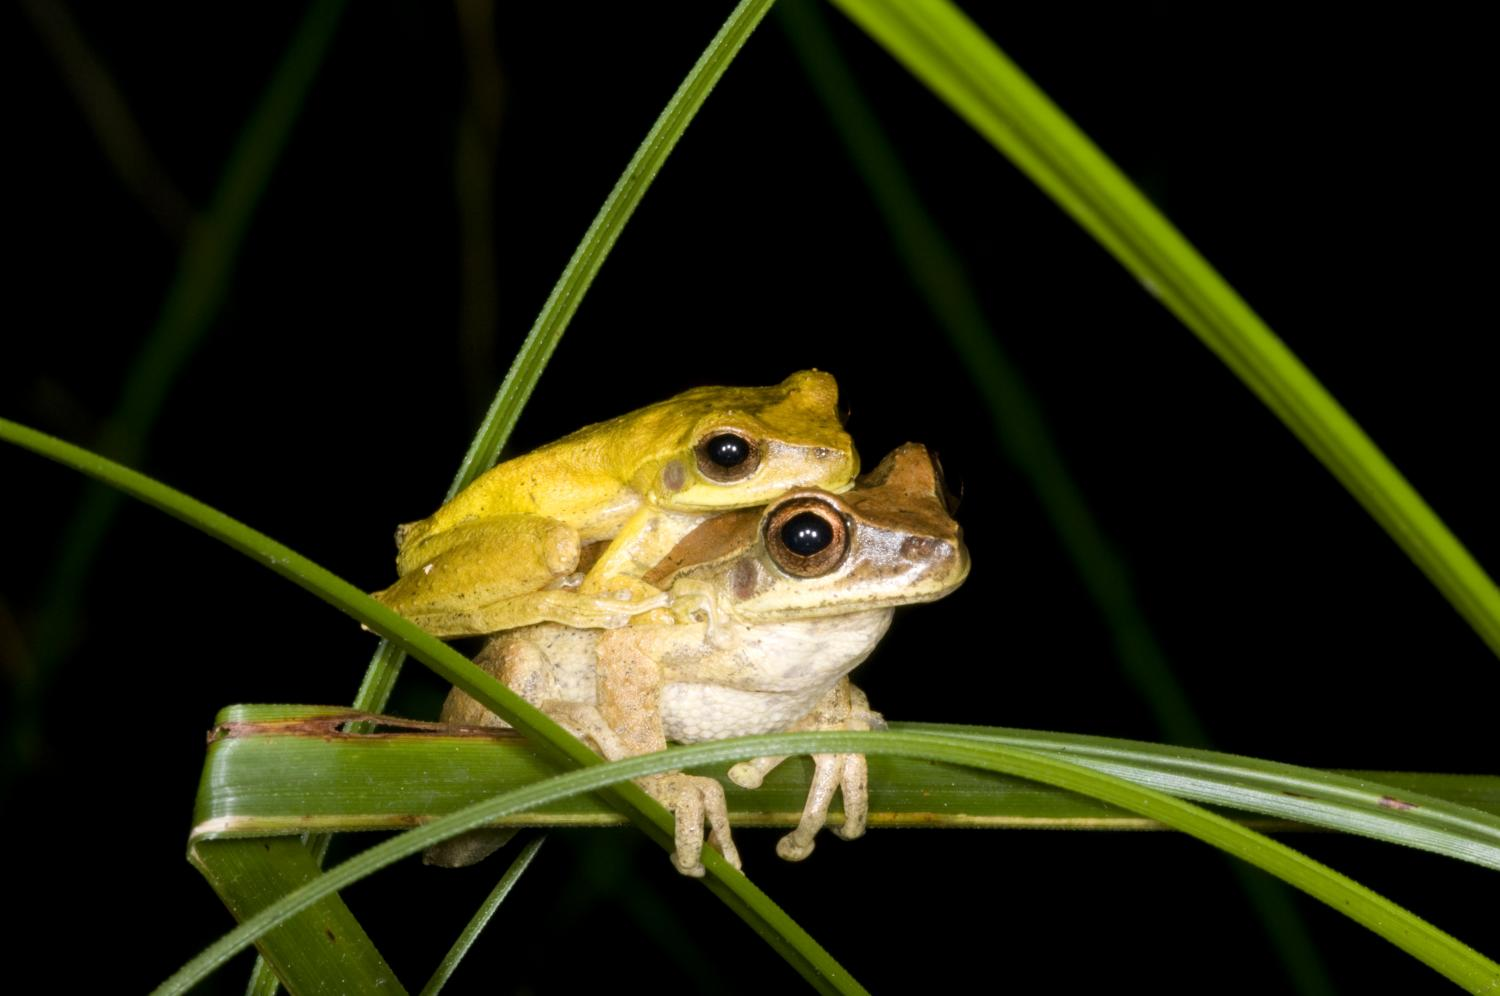 This Dance Is Taken Hundreds Of Male Frog Species Change Colors